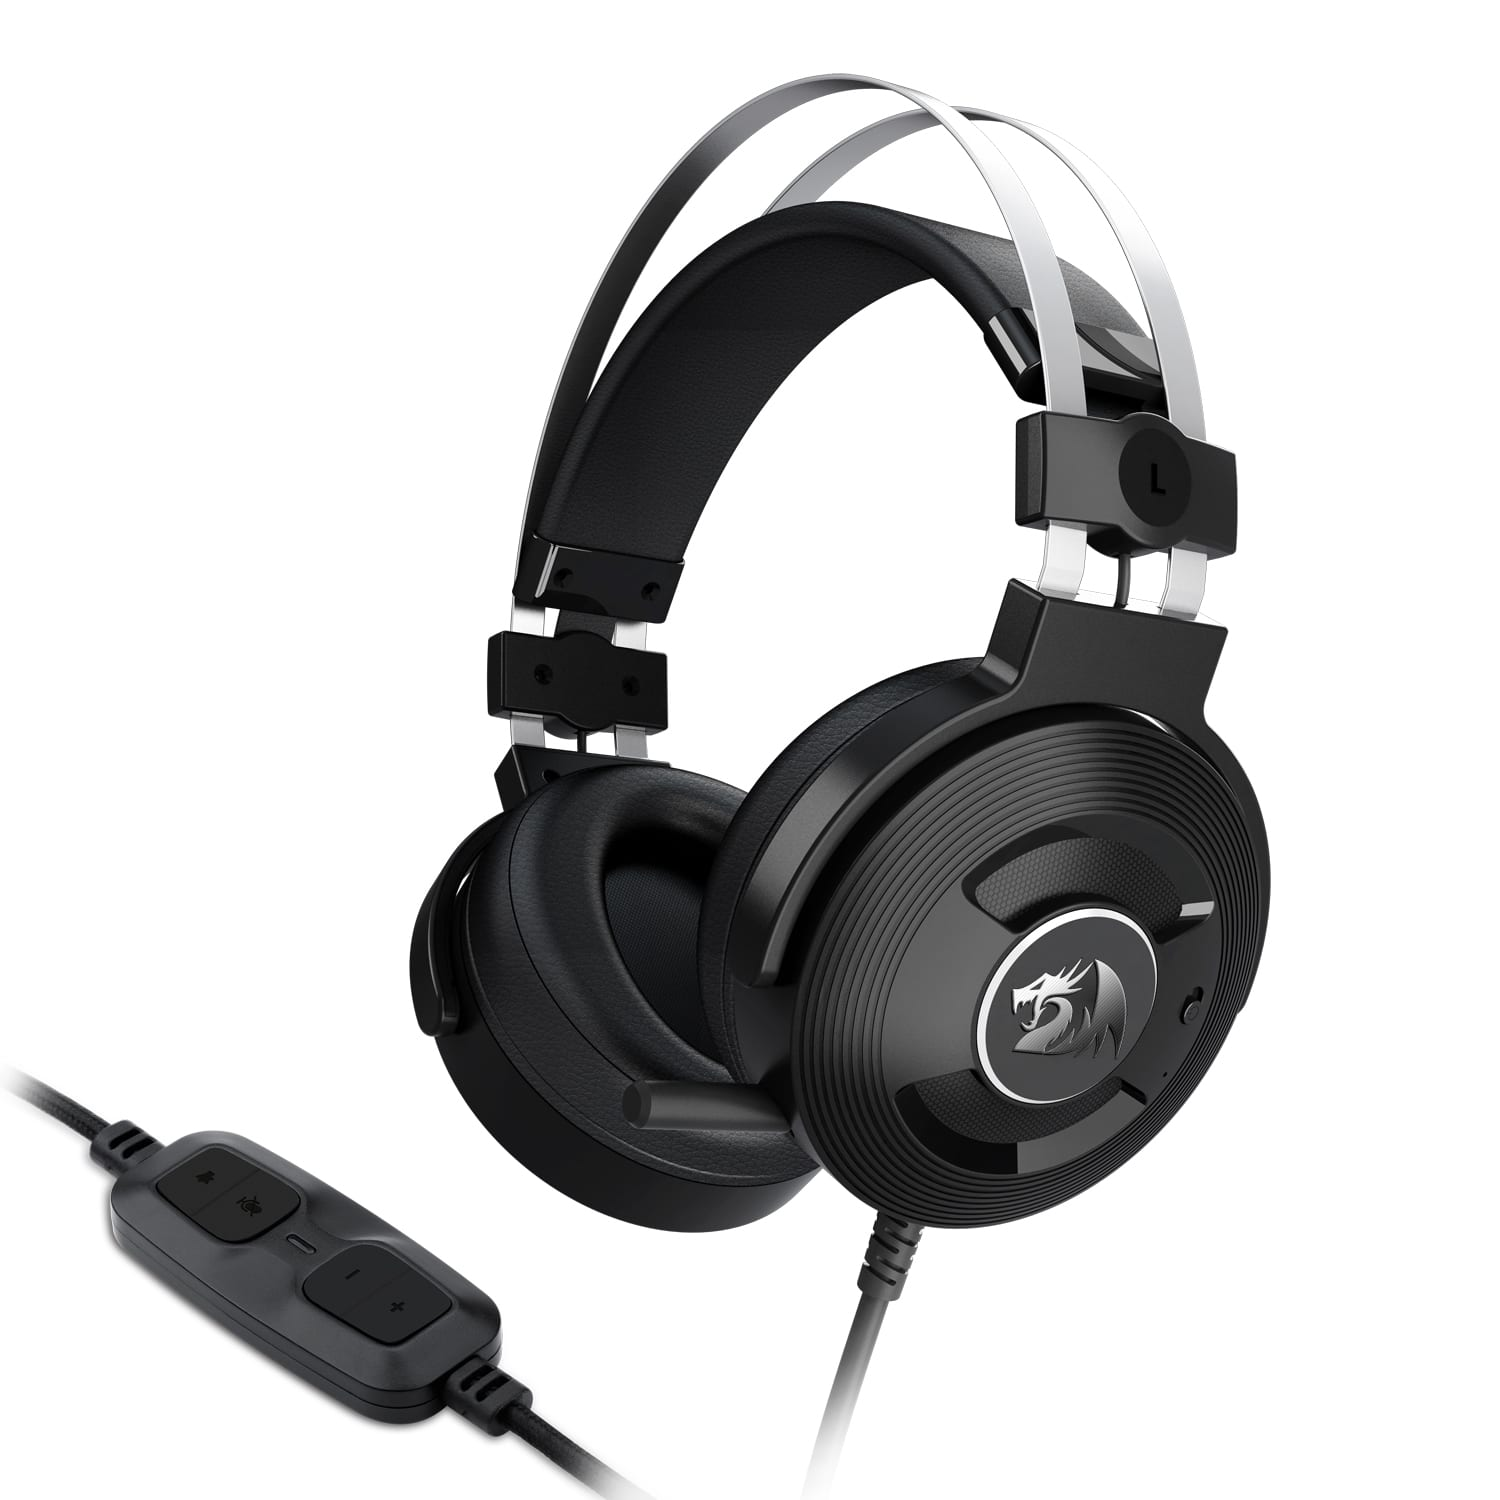 redragon triton anc gaming headset syntech. Black Bedroom Furniture Sets. Home Design Ideas